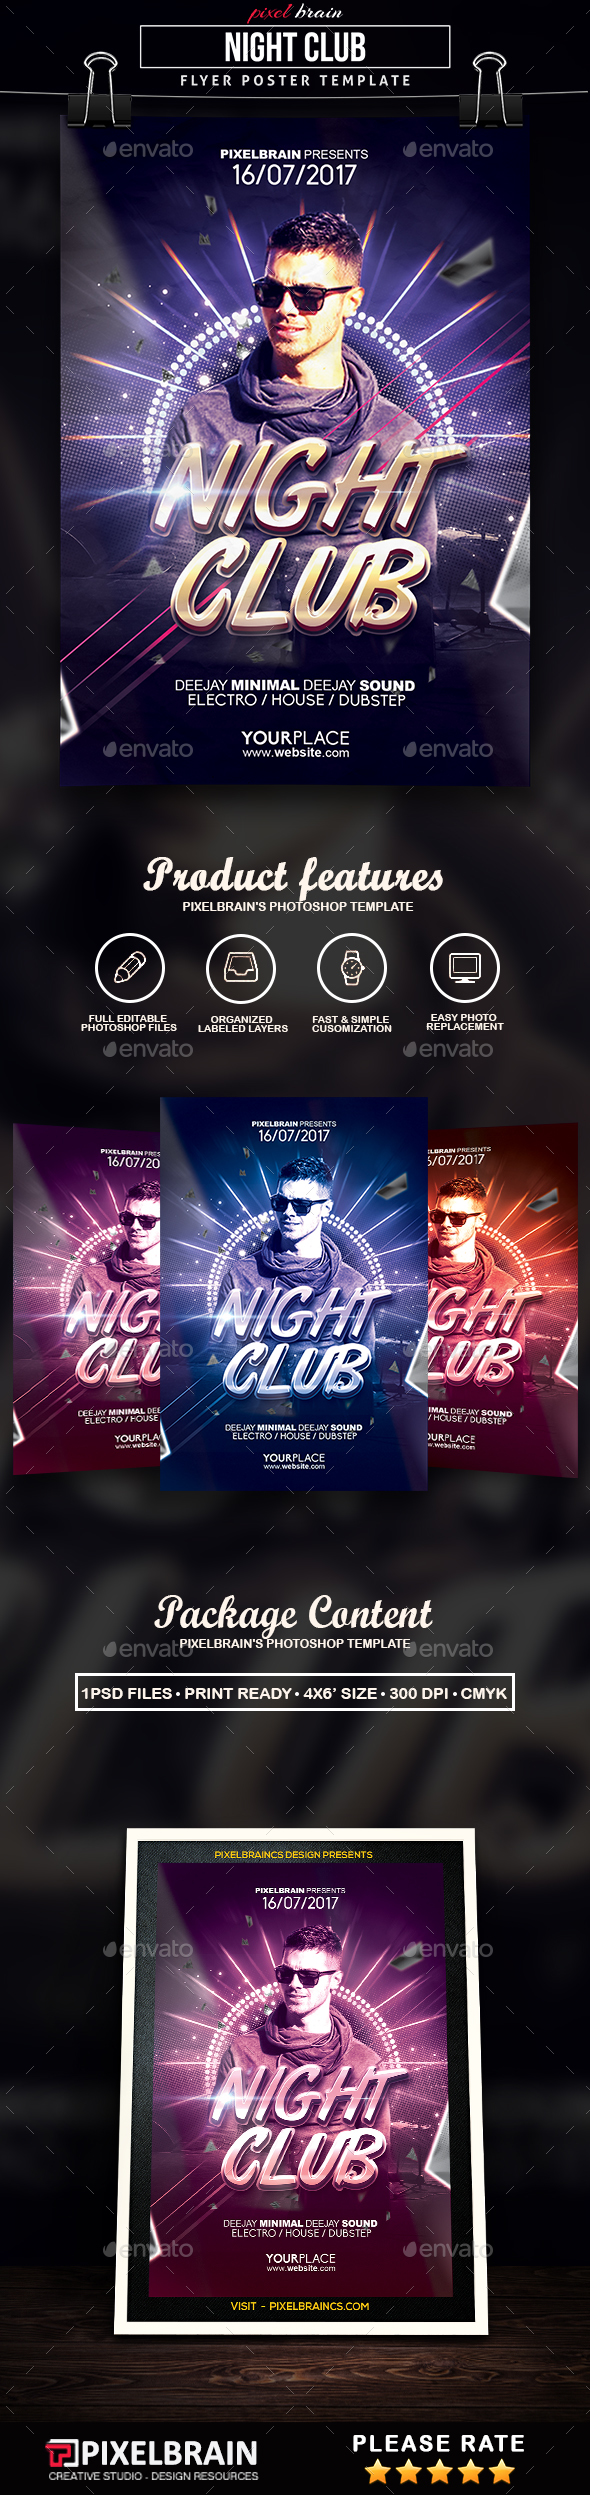 Night Club Party Flyer Template - Clubs & Parties Events